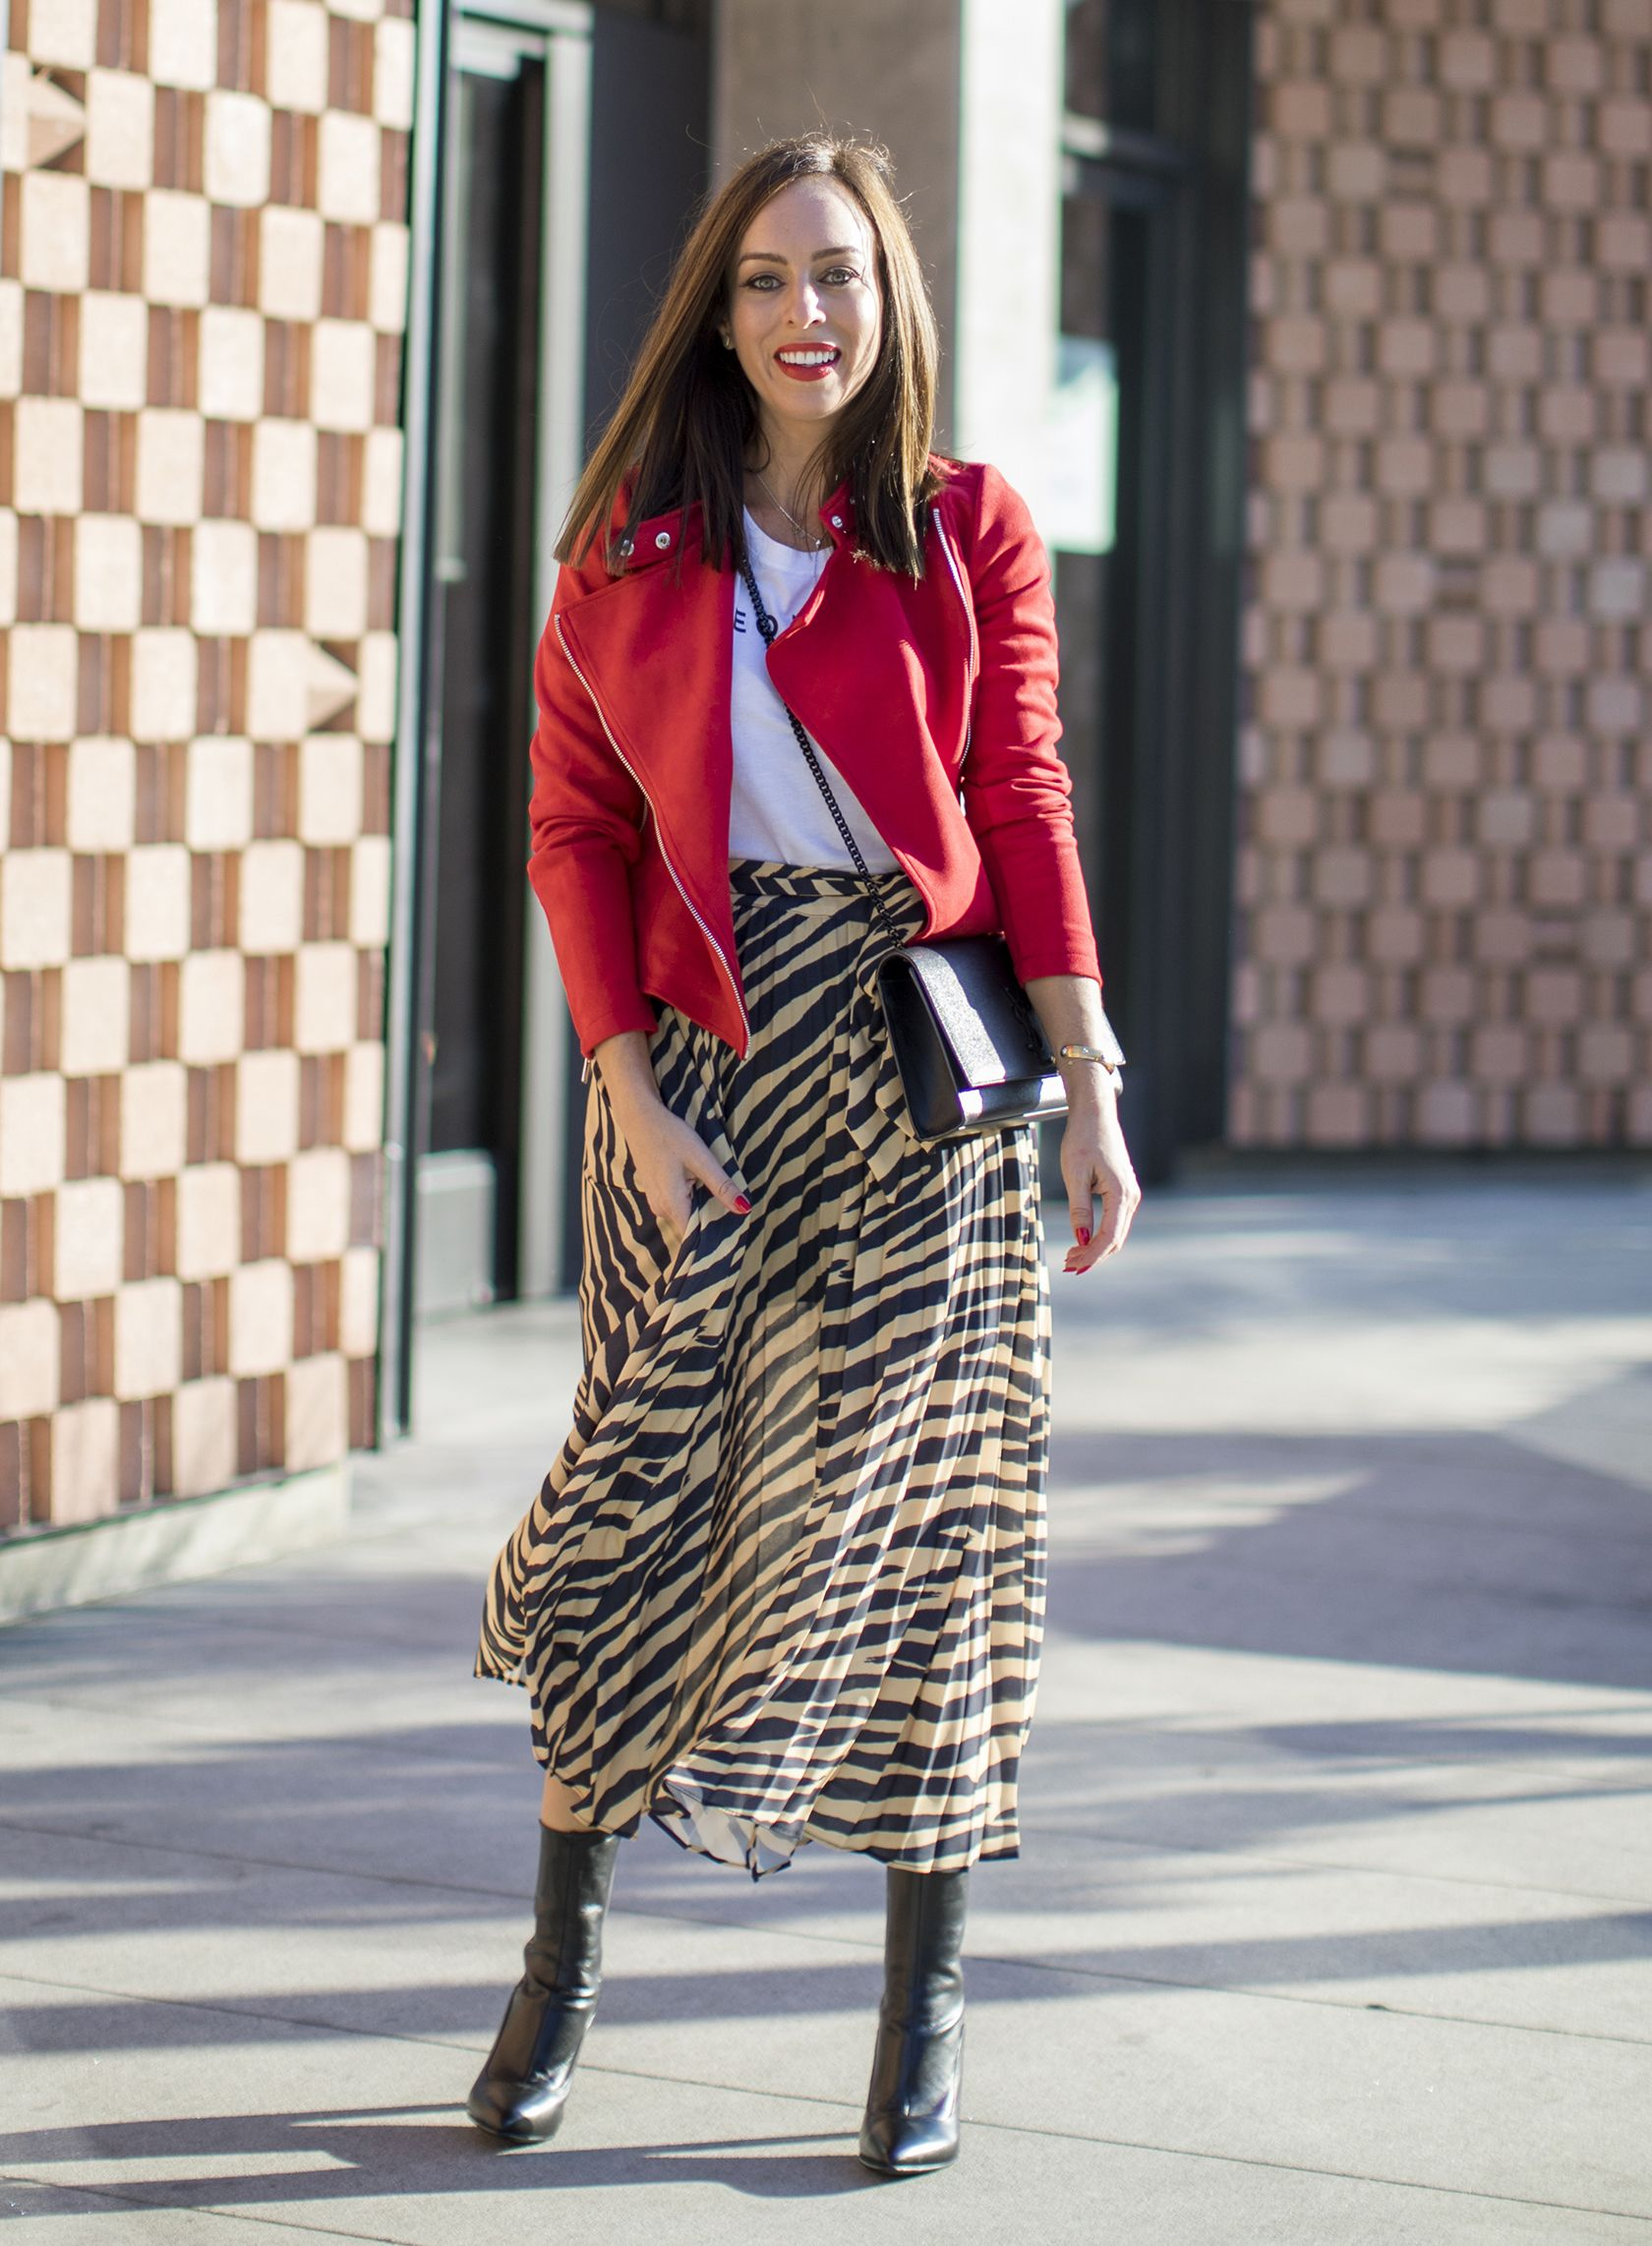 be4254e9db Sydne Style shows how to wear the animal print tend for fall 2018 in  topshop zebra skirt  zebra  skirts  animalprints  red